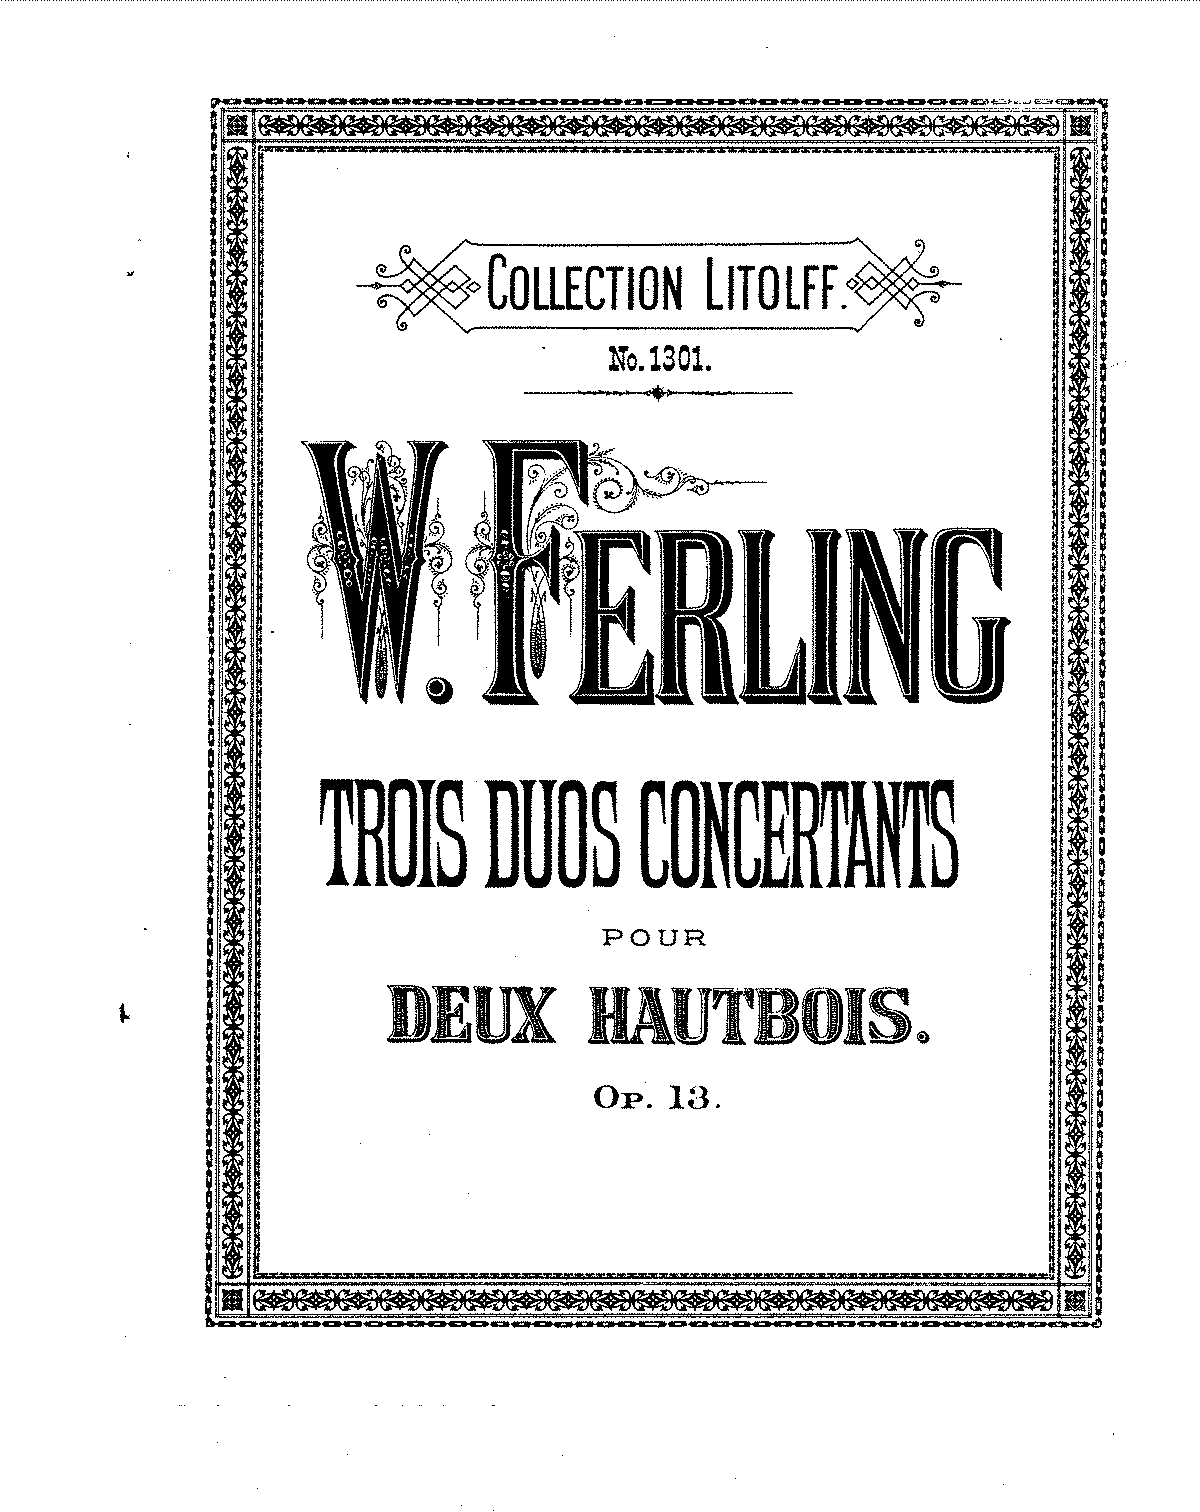 Ferling - 3 Duo Concertants for 2 oboes, Op. 13.pdf